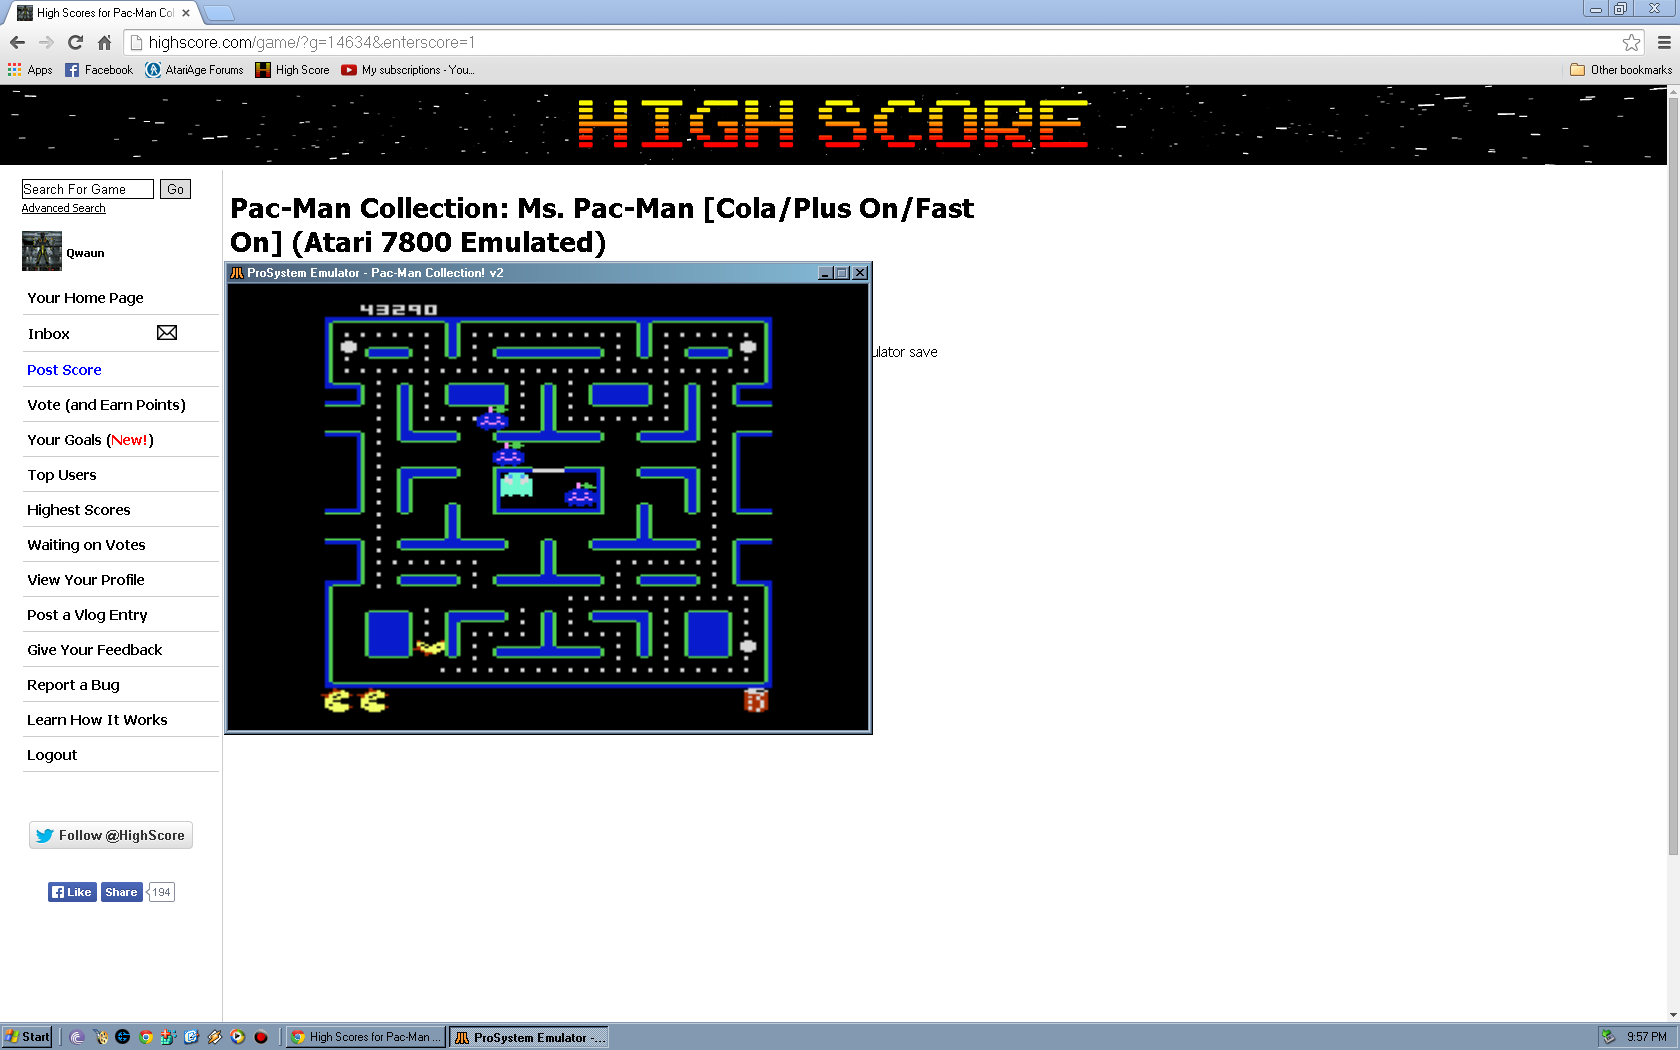 Qwaun: Pac-Man Collection: Ms. Pac-Man [Cola/Plus On/Fast On] (Atari 7800 Emulated) 43,290 points on 2014-05-14 22:36:24